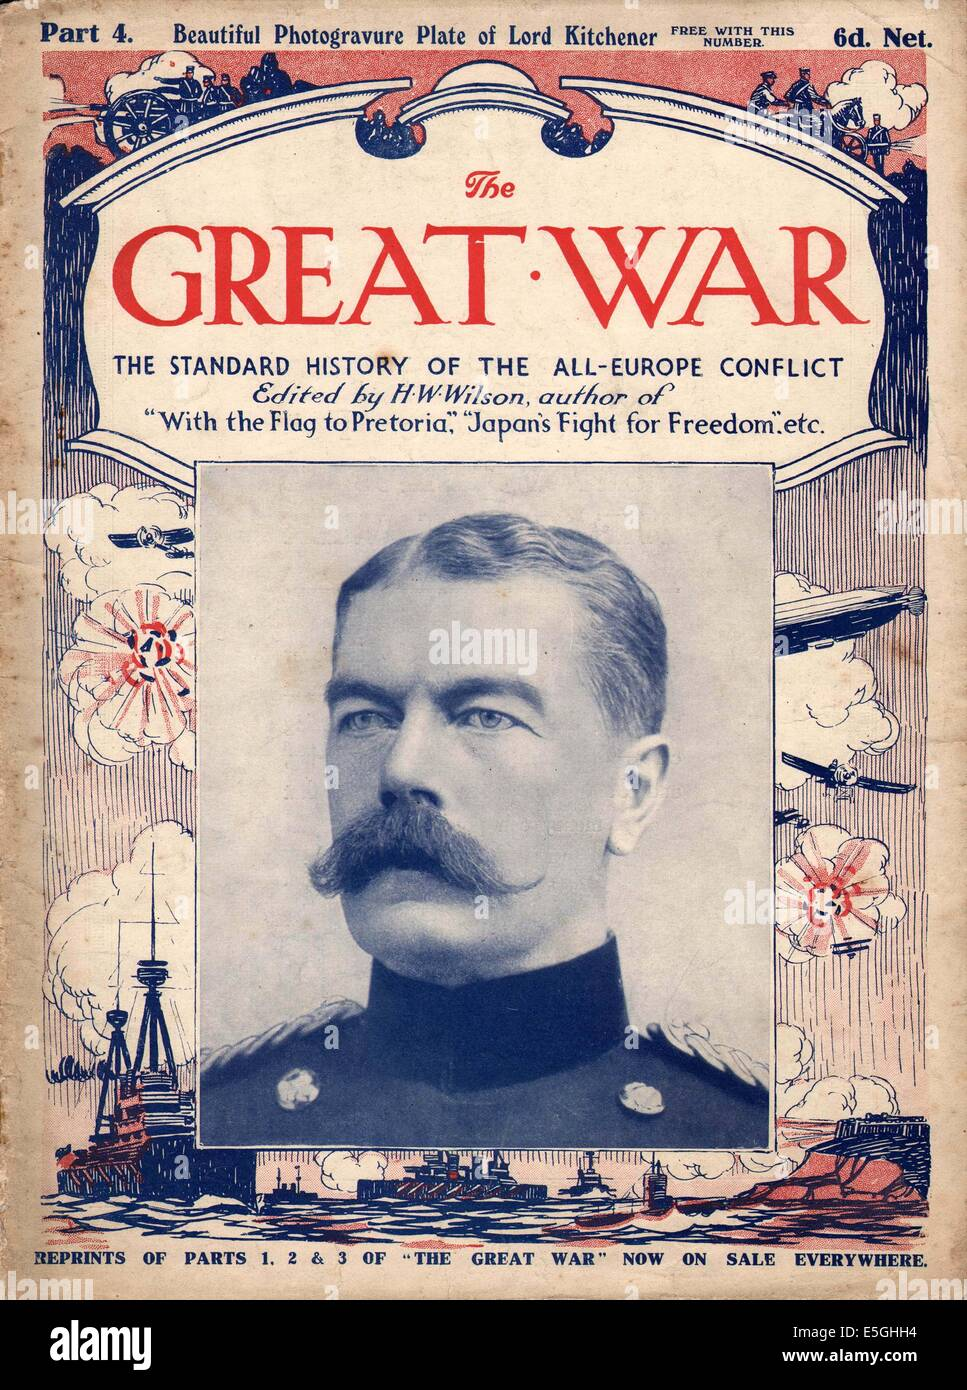 the great war front page magazine lord kitchener stock photo  -  the great war front page magazine lord kitchener